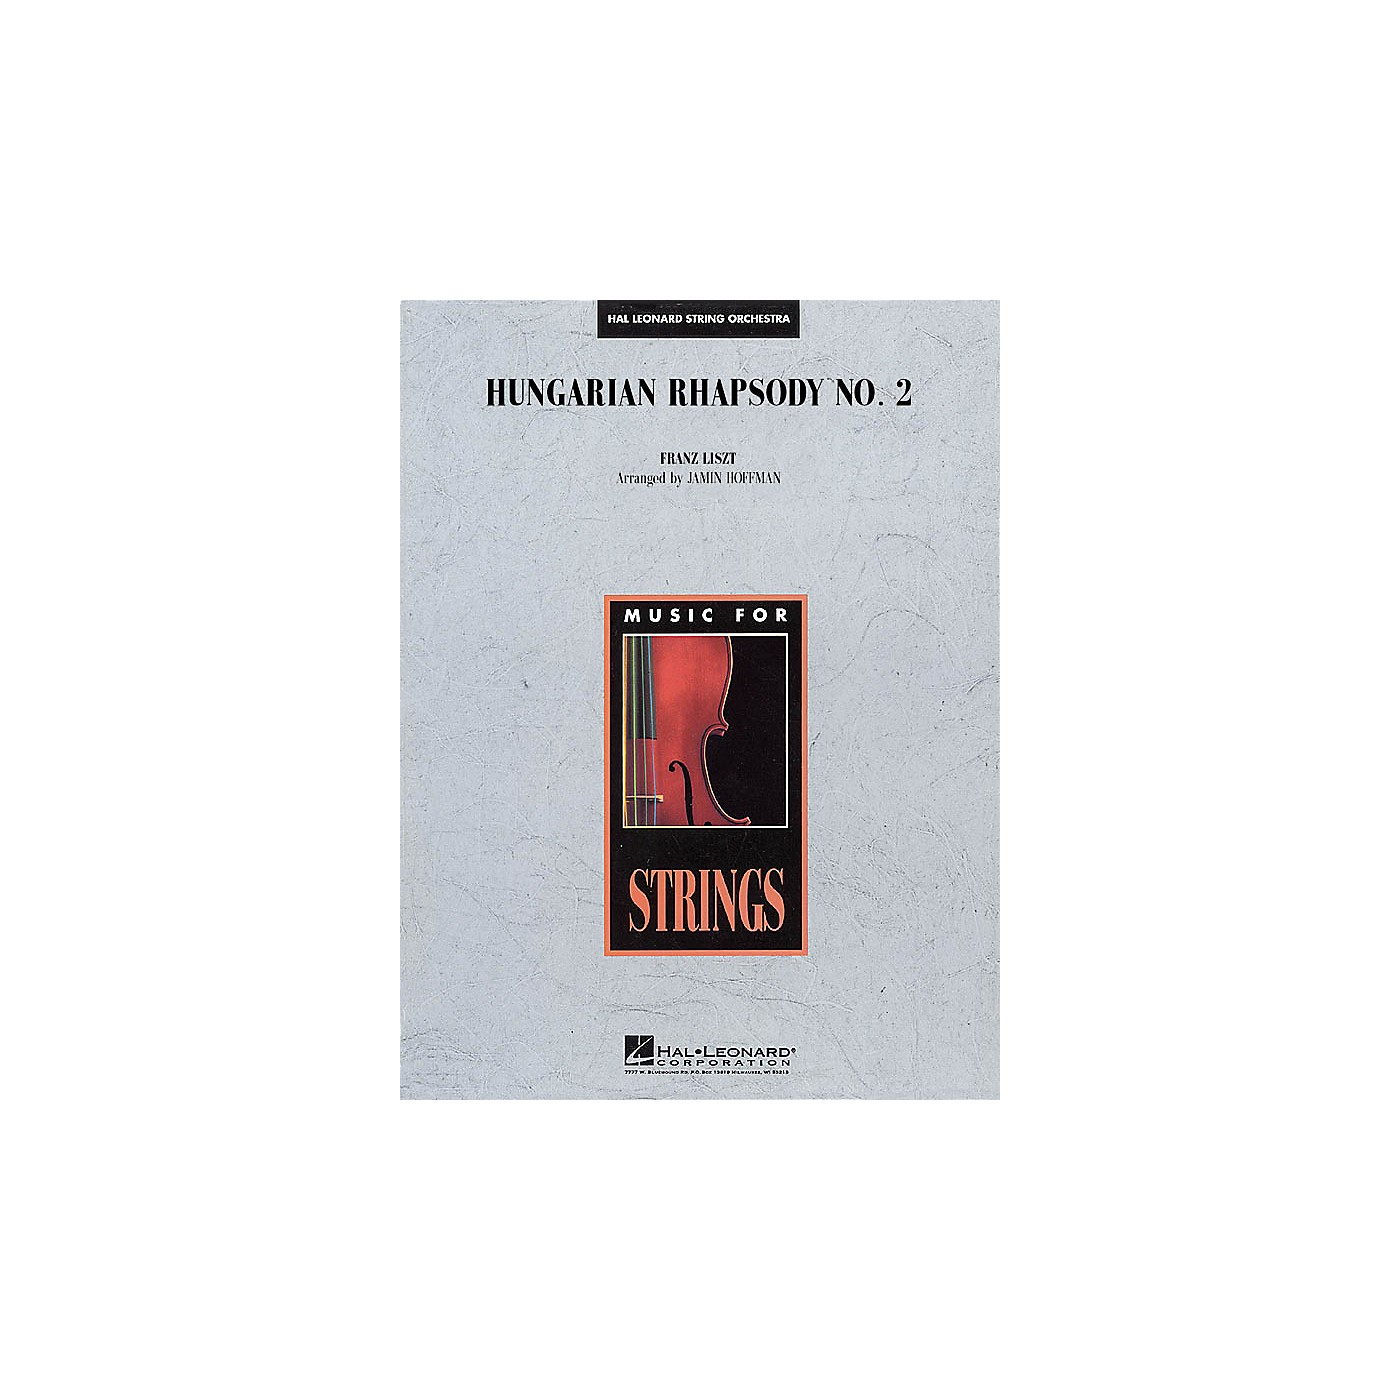 Hal Leonard Hungarian Rhapsody No. 2 Music for String Orchestra Series Softcover Arranged by Jamin Hoffman thumbnail